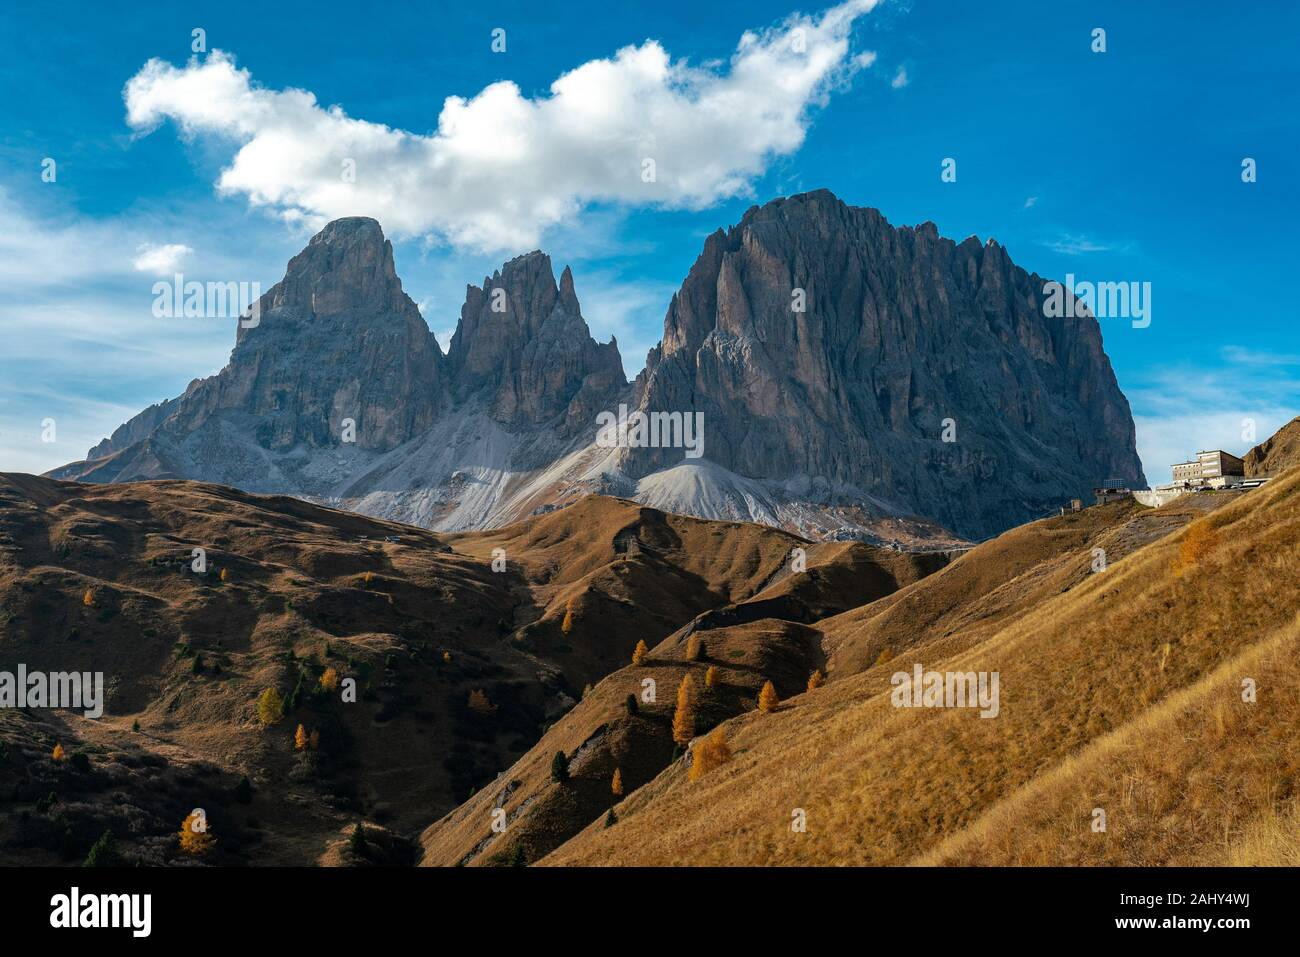 Scenic view of the Langkofel and Plattkofel mountains in the italian Dolomites seen from the Sella pass with the Mariaflora refugio in the background. Stock Photo